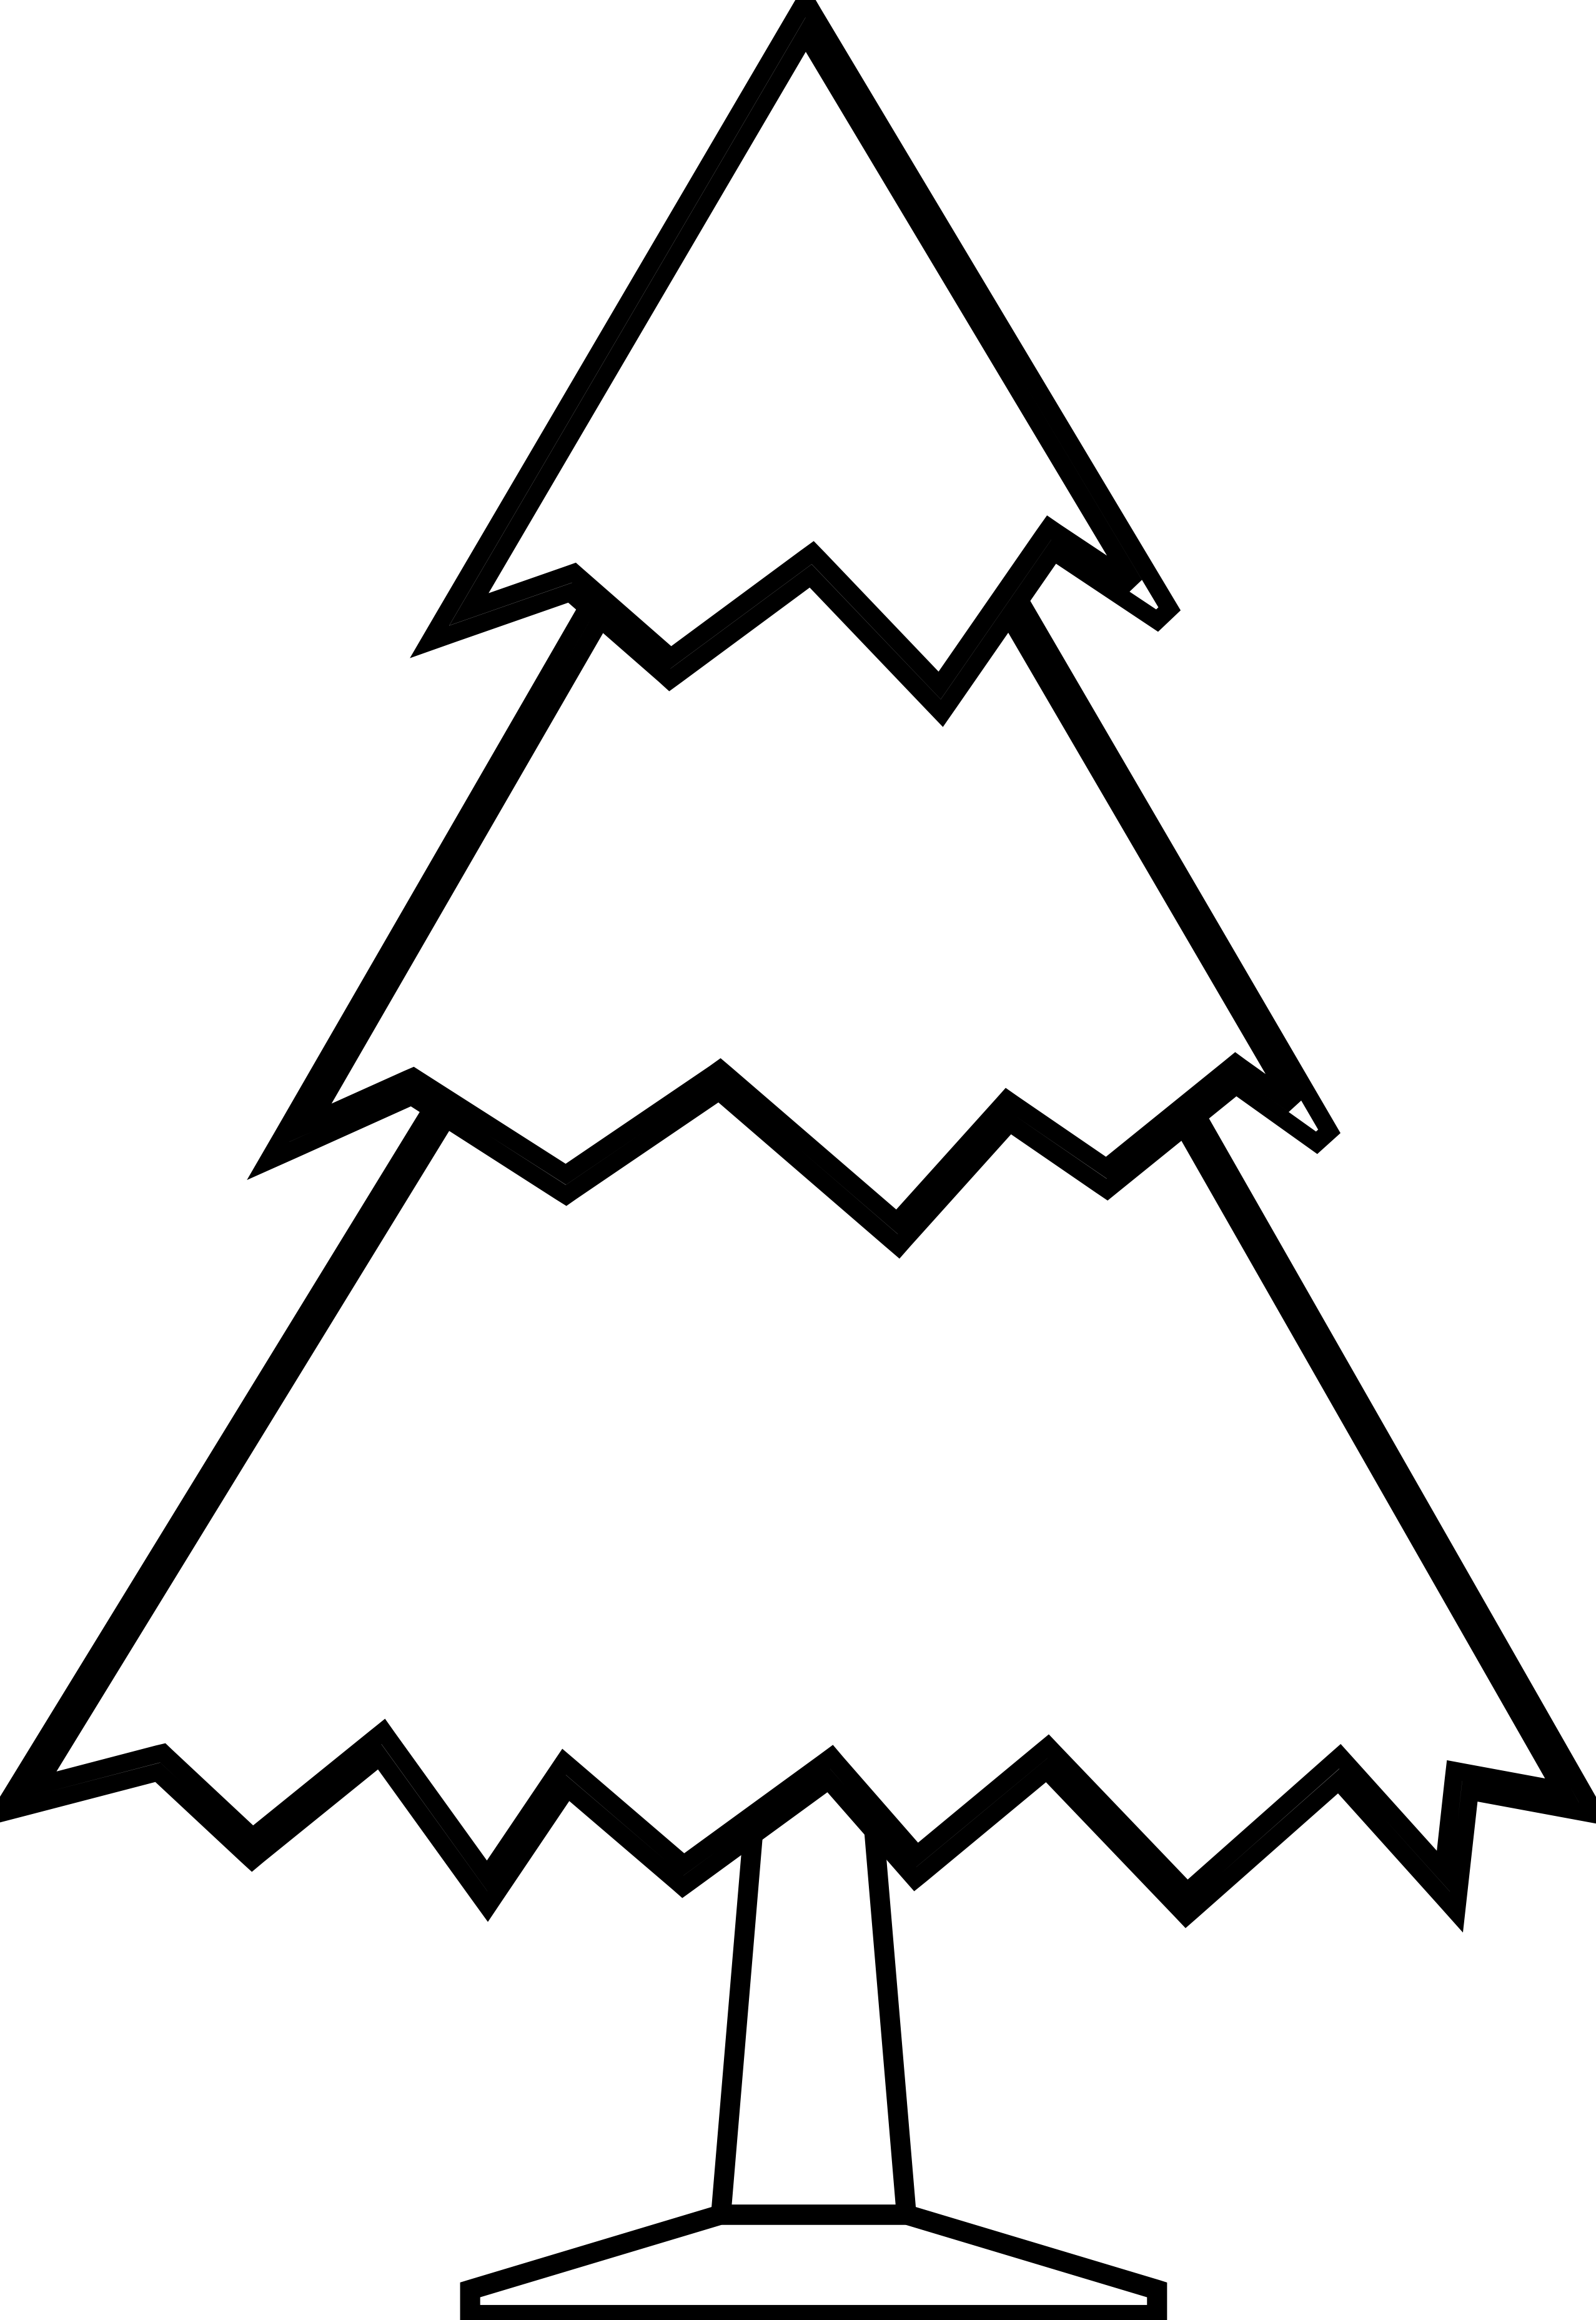 Free Christmas Line Drawing, Download Free Clip Art, Free.